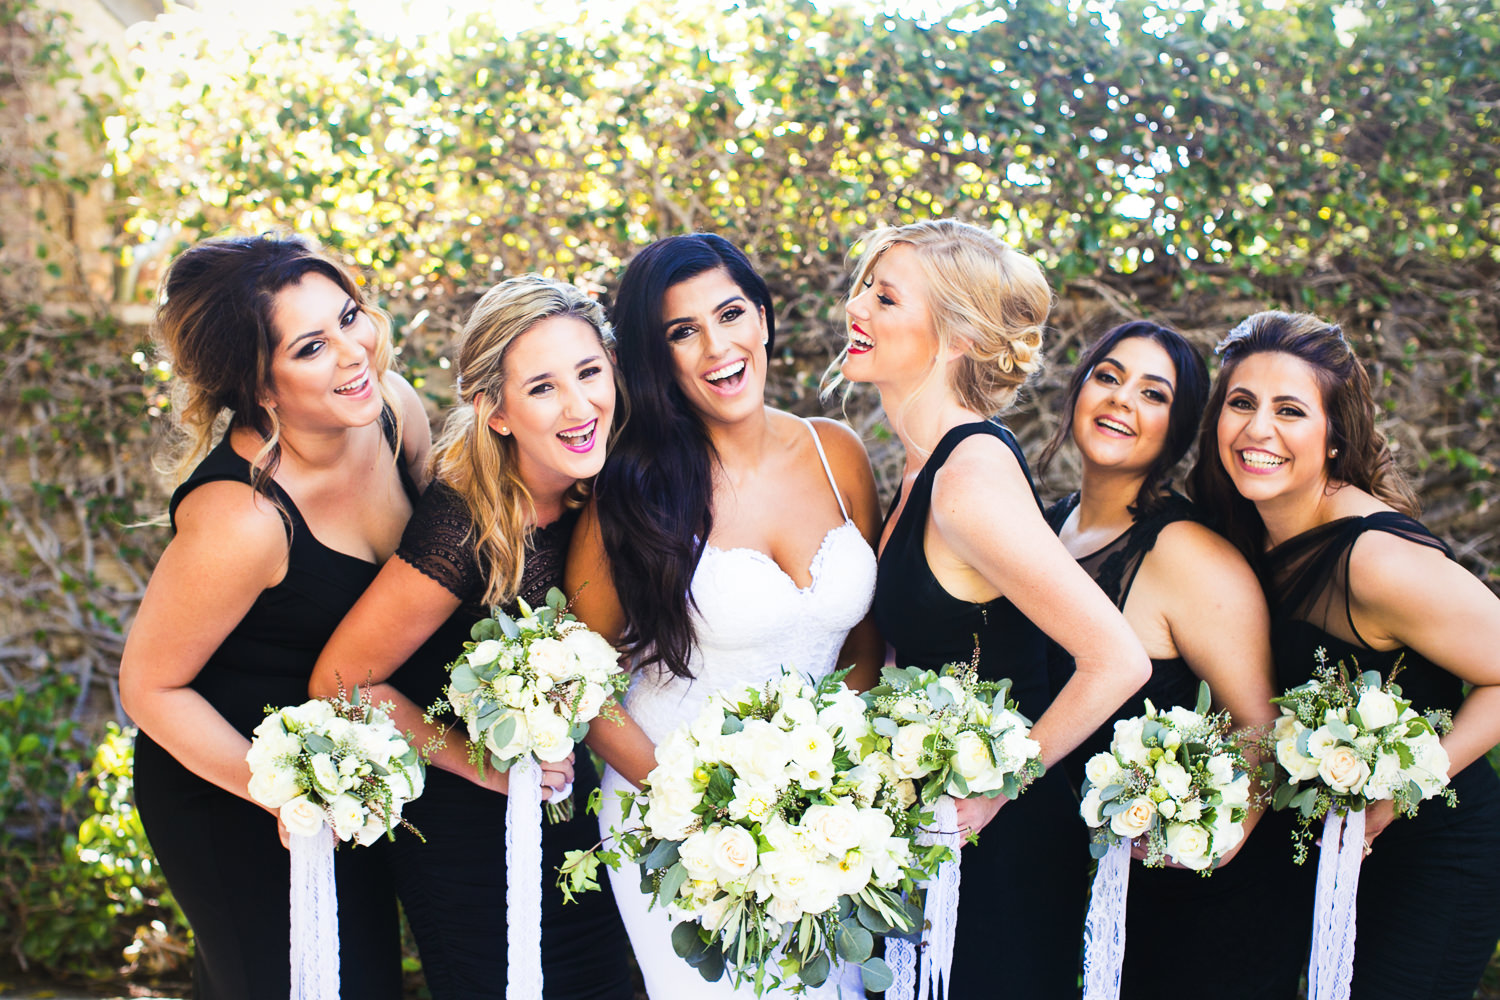 Hummingbird Nest Ranch Wedding - Persian Bride With Bridal Party